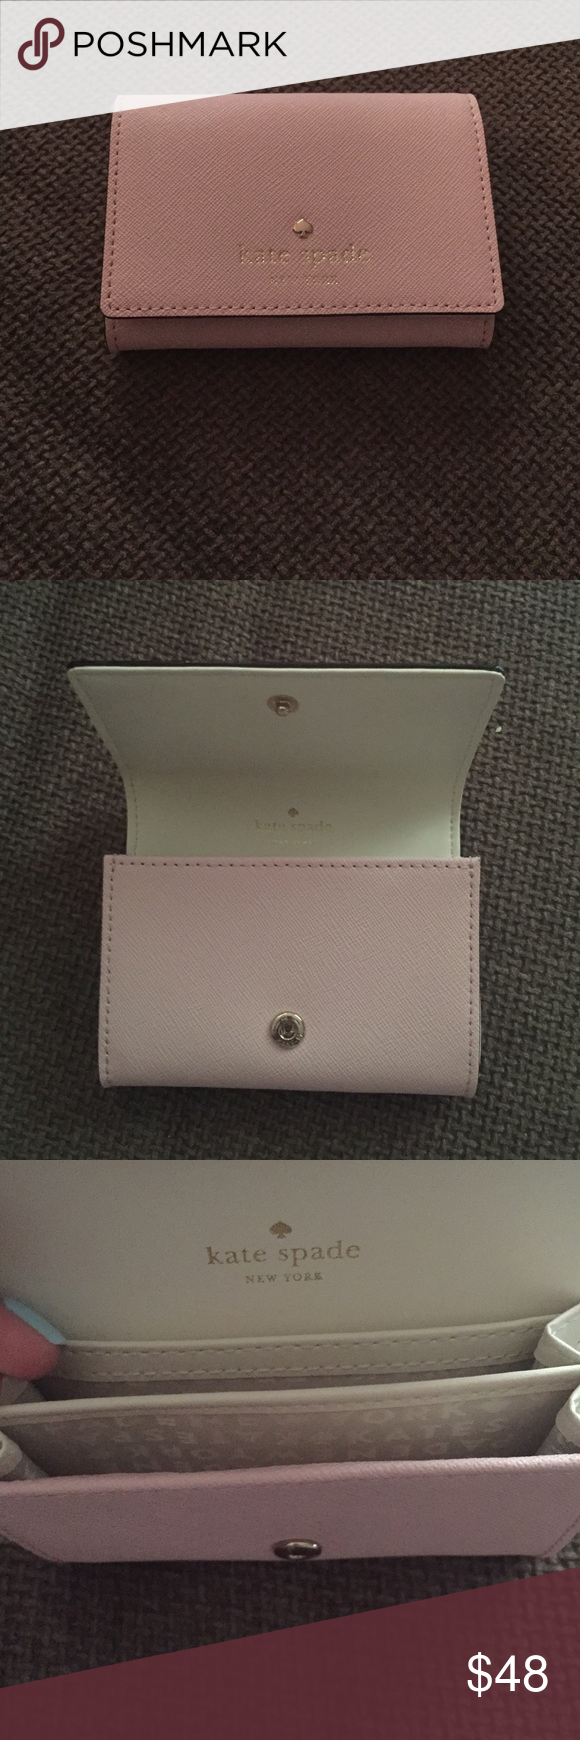 """Kate Spade small pink wallet Small wallet with flap and snap closure. Two slide pockets. Gold foil embossed Kate Spade New York signature with spade stud. Crosshatched leather with smooth leather trim.  Capital Kate jacquard lining. 4.5""""x3.5"""". Never been used Kate Spade Bags Wallets"""